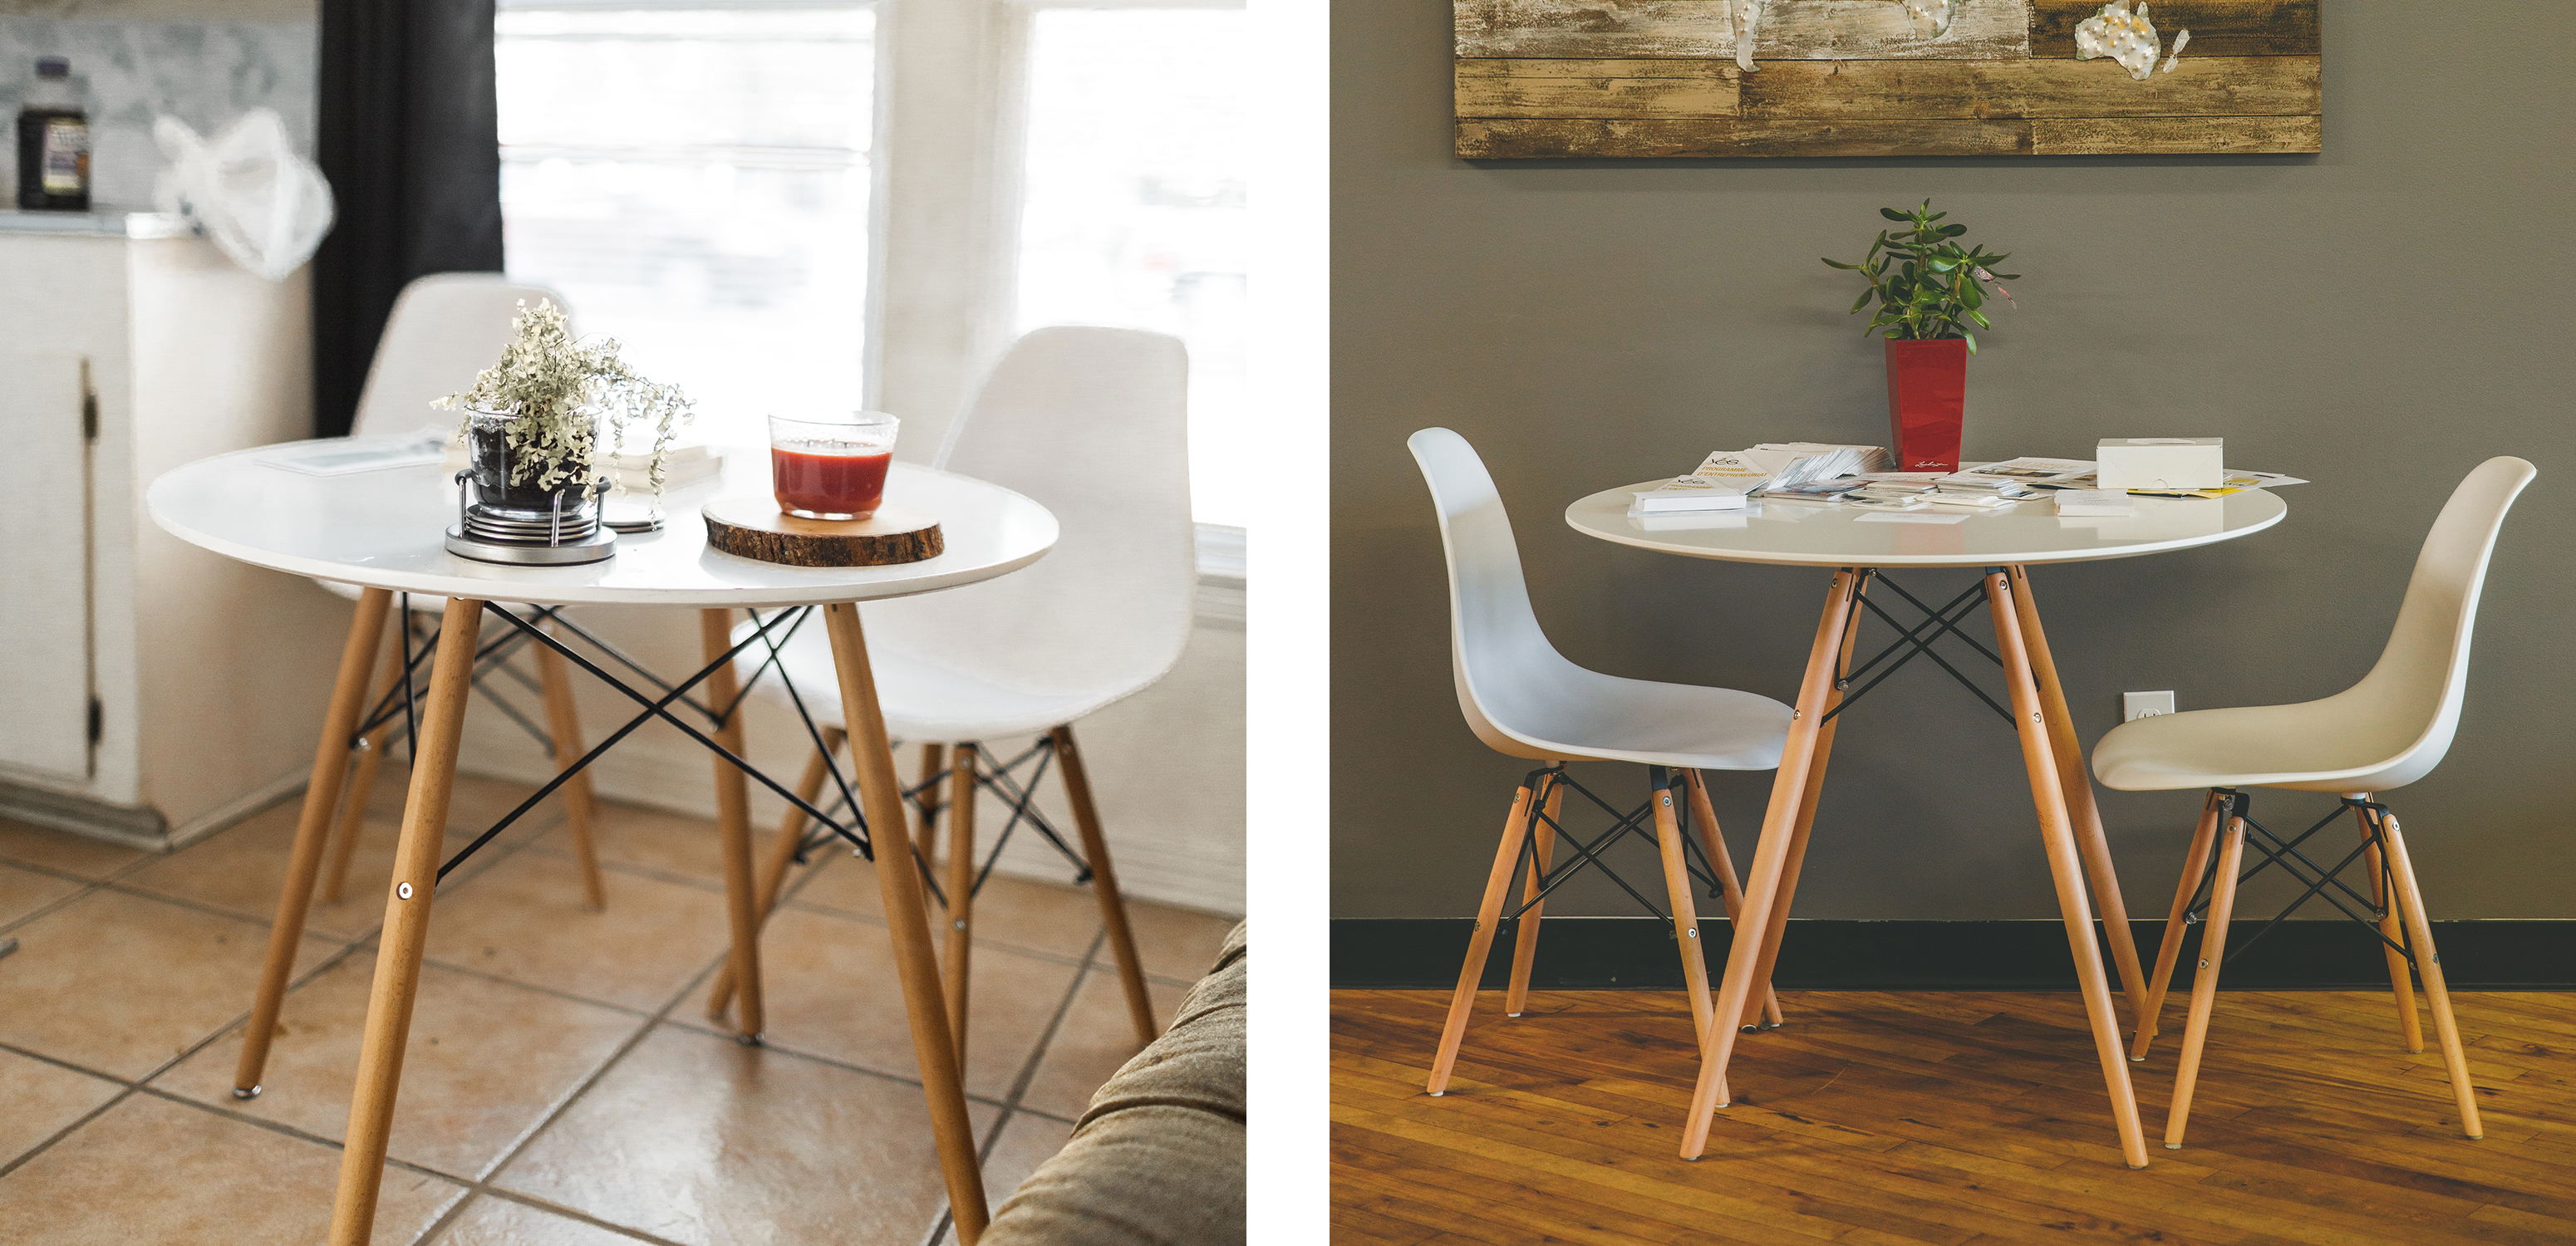 Styling Eames Dining Tables & Dining Chairs